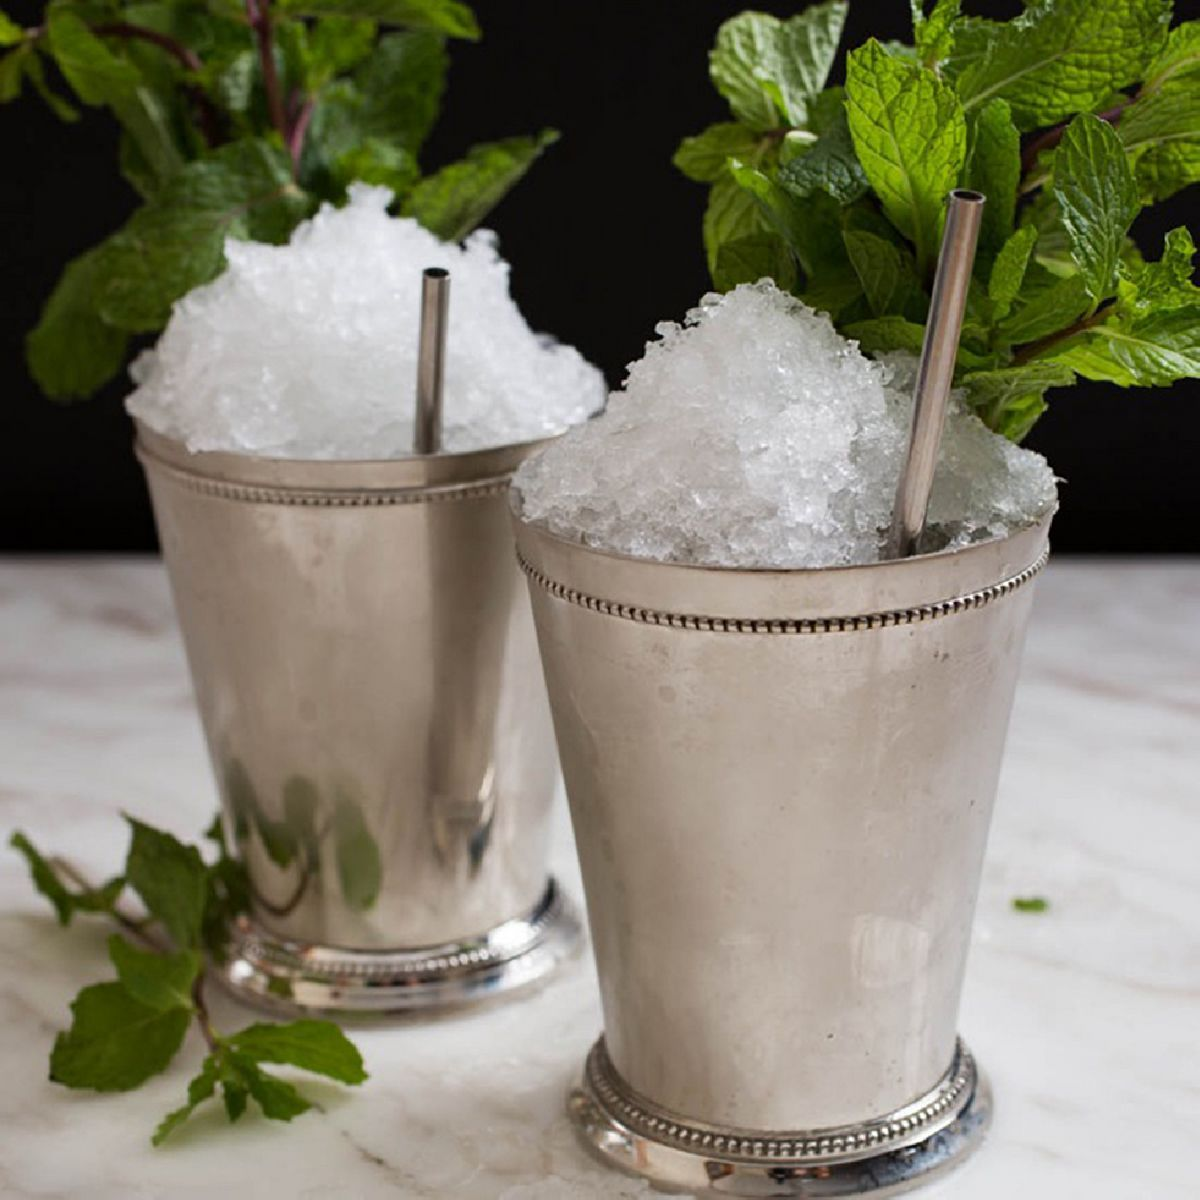 The signature drink of the Kentucky Derby and possibly the whole of the South. This is a bourbon-based cocktail that prominently features a cooling and fragrant use of fresh mint and crushed or shaved ice. Even the description sounds refreshing!  The julep is actually a whole category of cocktails served over crushed ice. We might even be willing to debate whether a Mai Tai is technically a julep. As long as we make a few to sample...  Photo: The CocktailDB